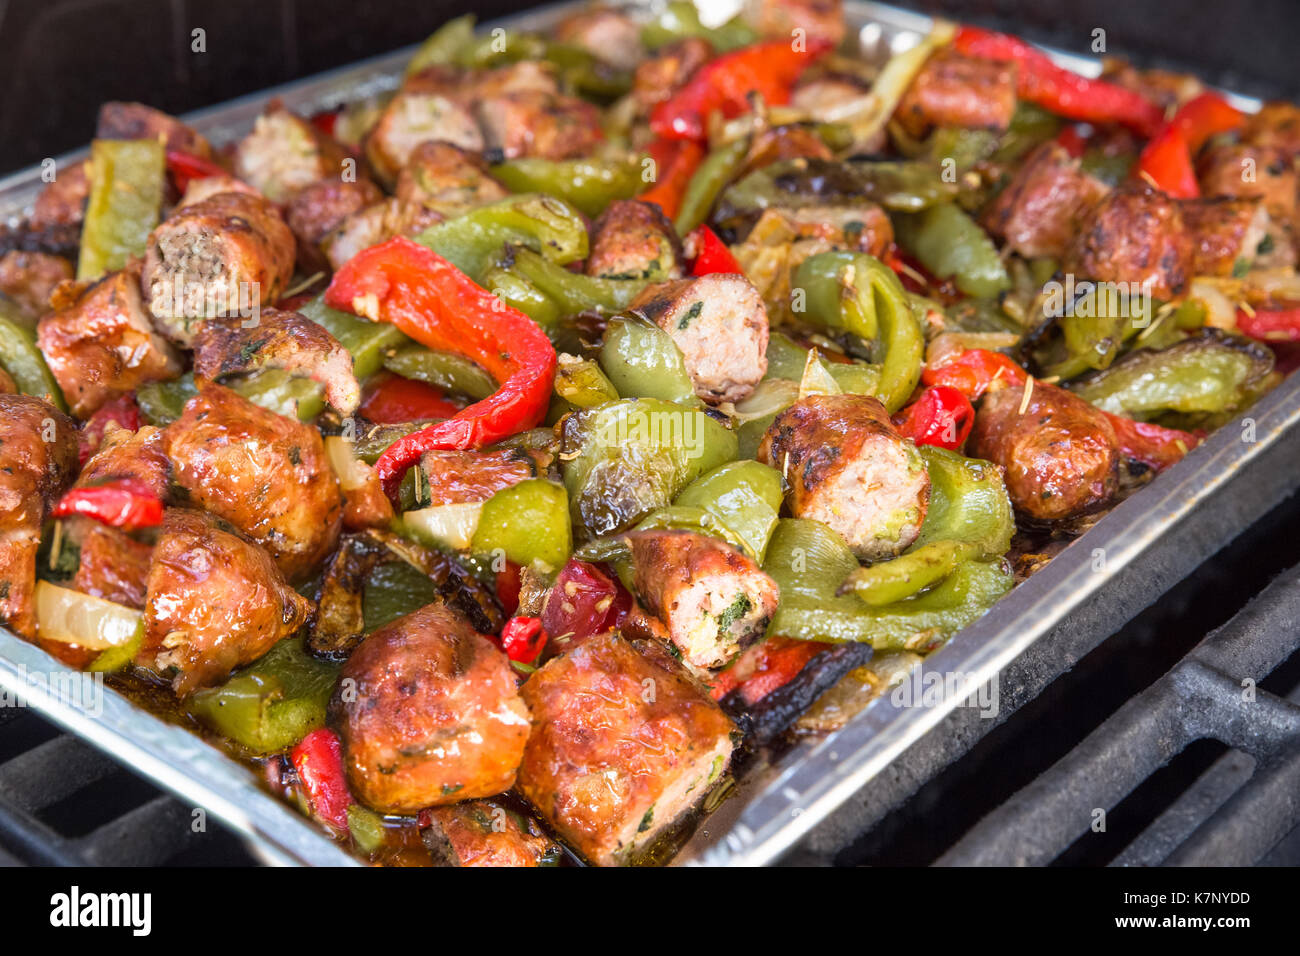 Italian cuisine of sausage and peppers - Stock Image